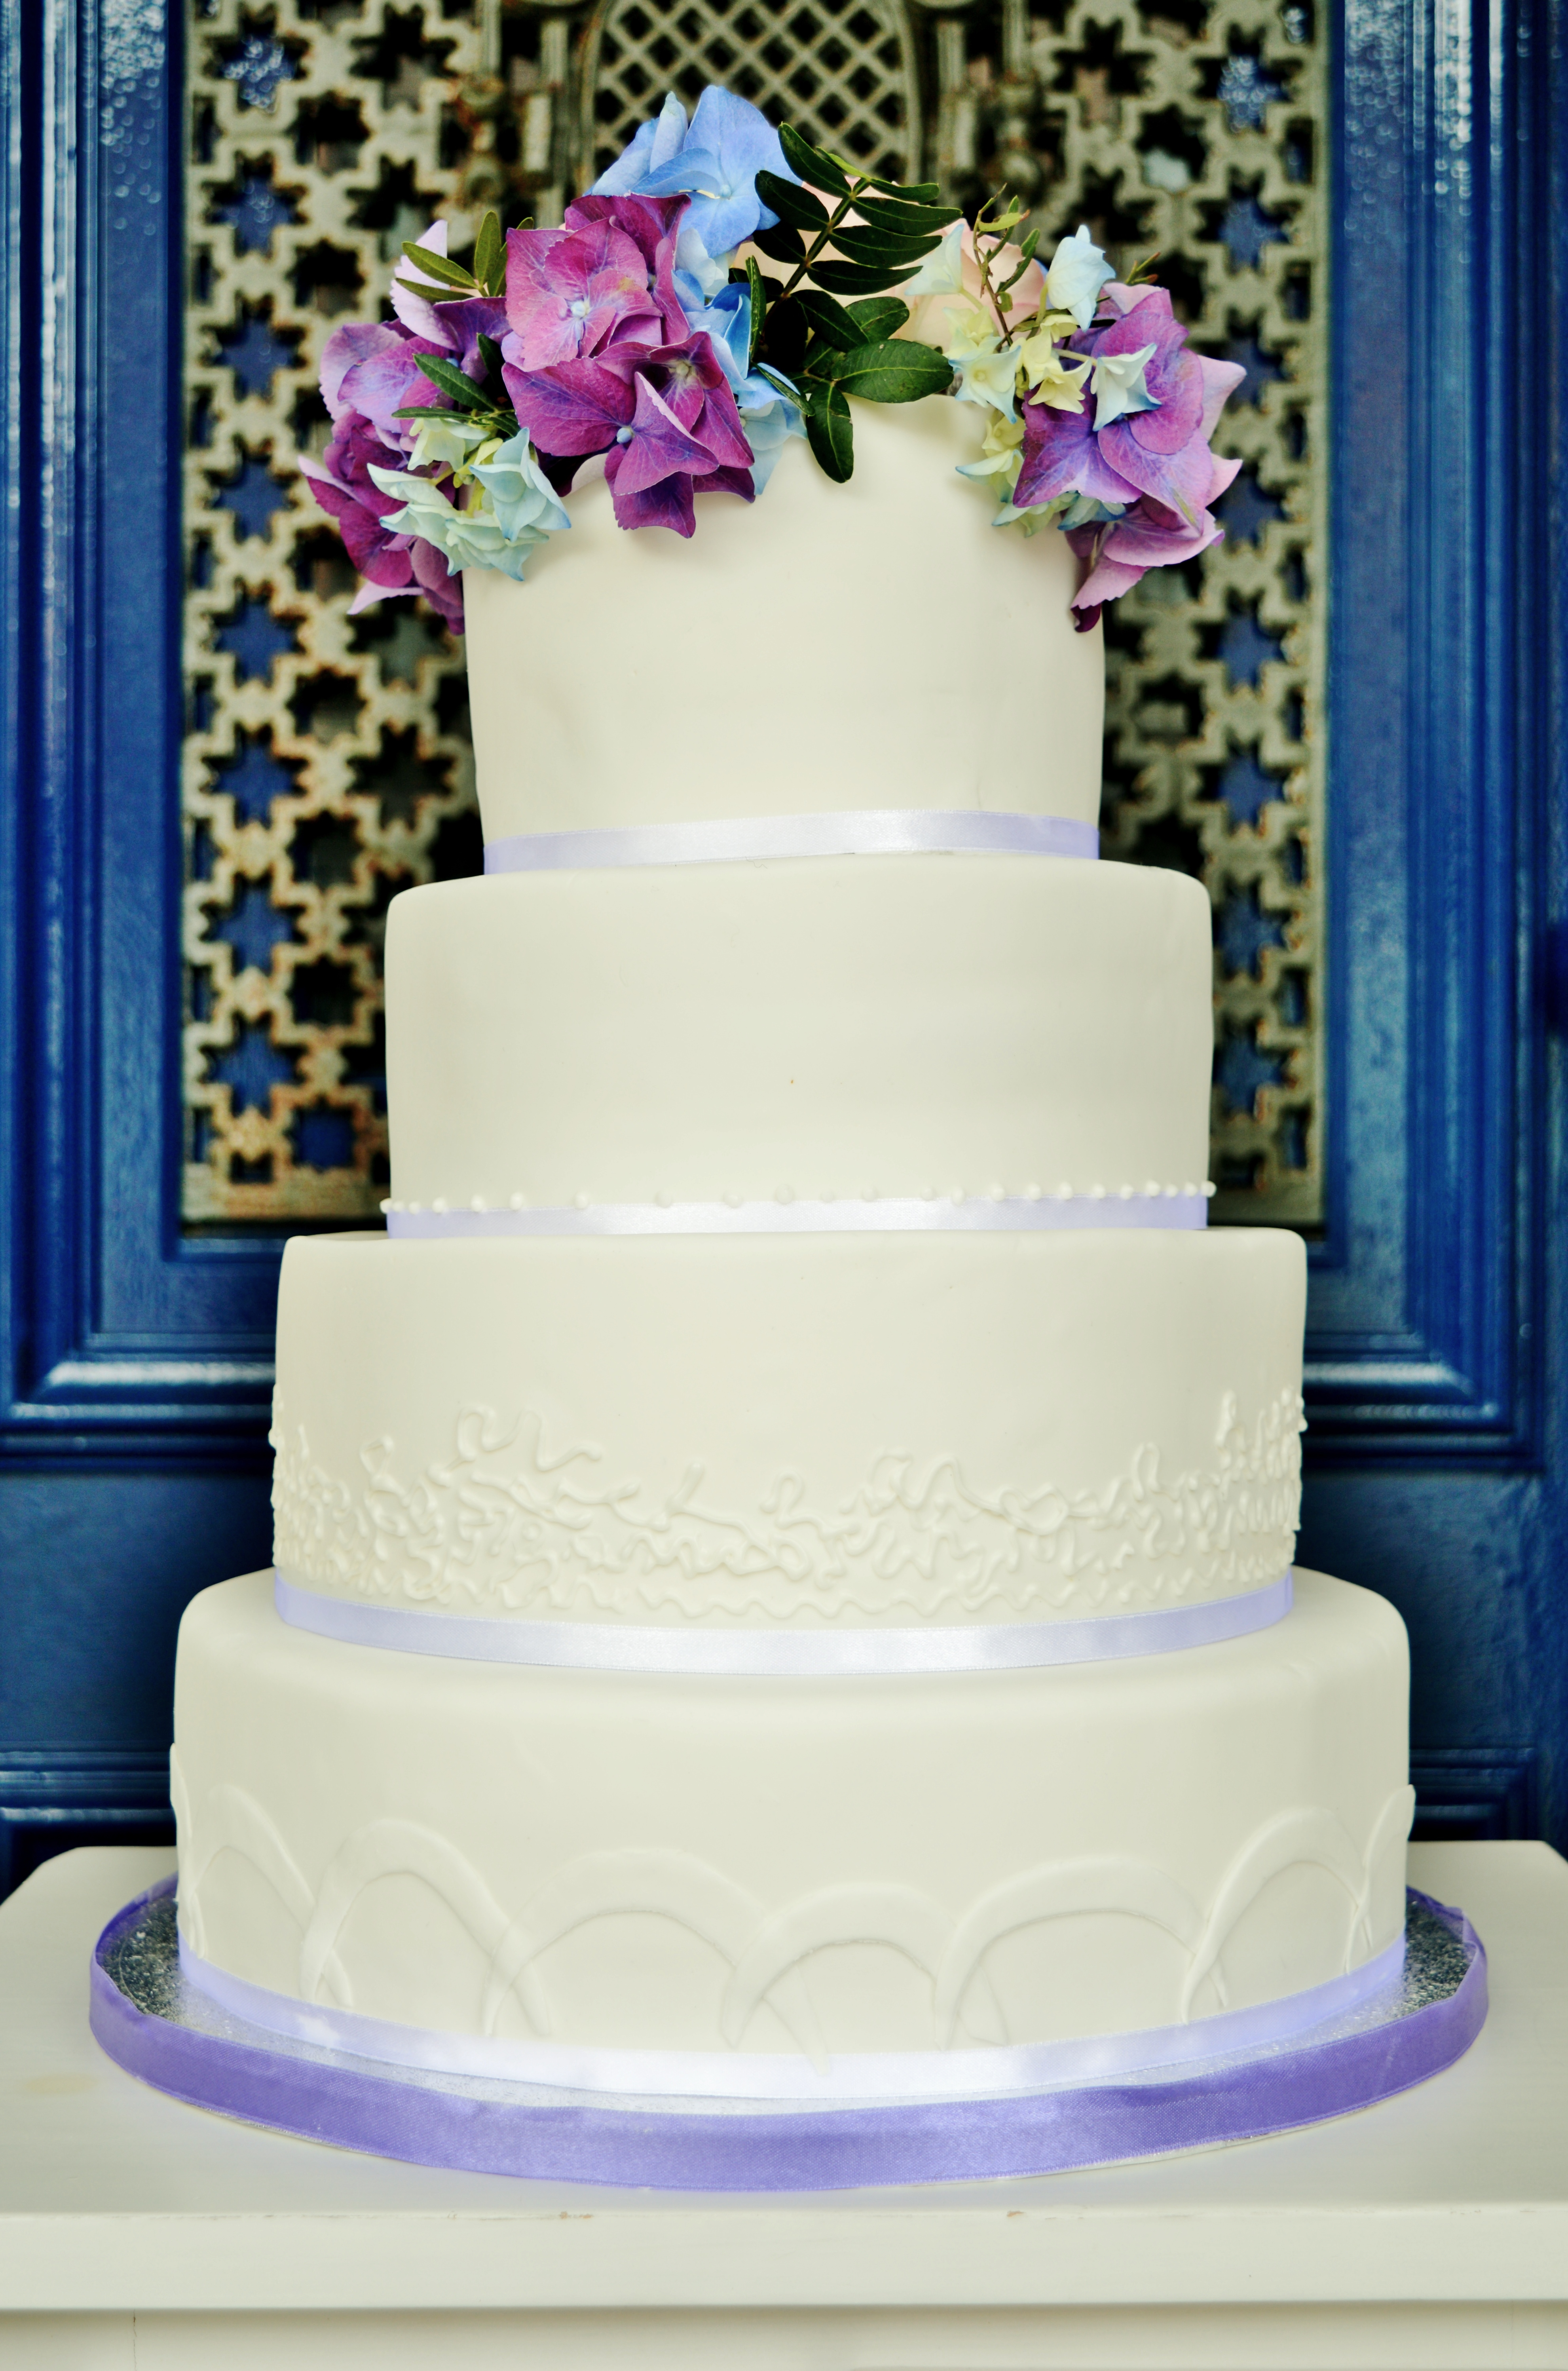 Hortensia sugar flowers Wedding cake